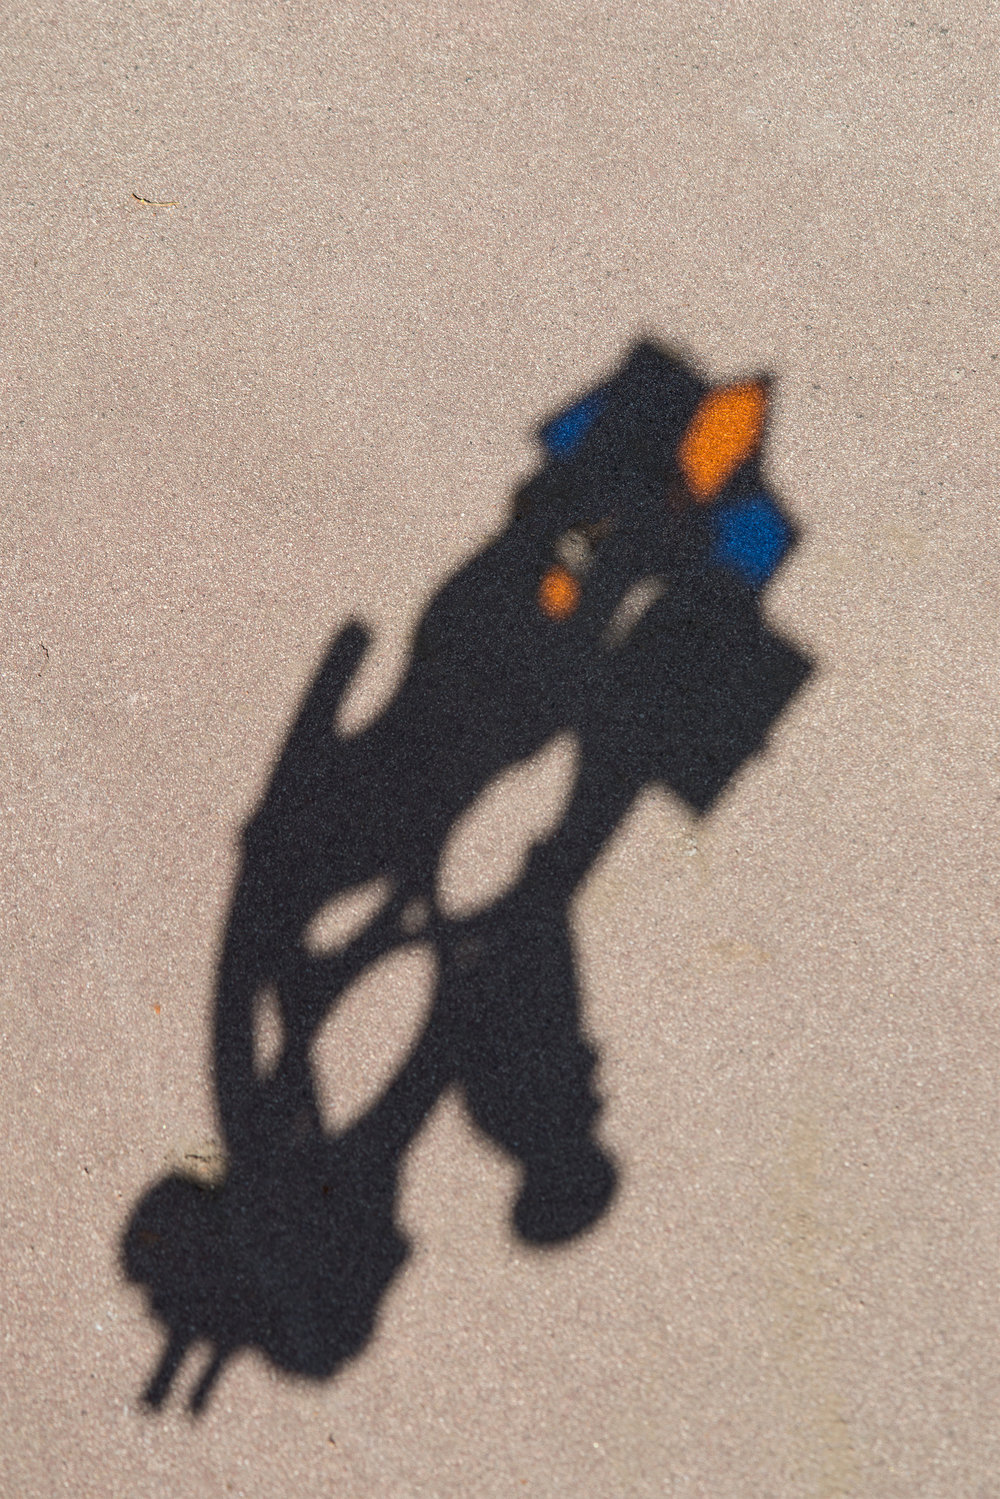 sextant-shadow.jpg